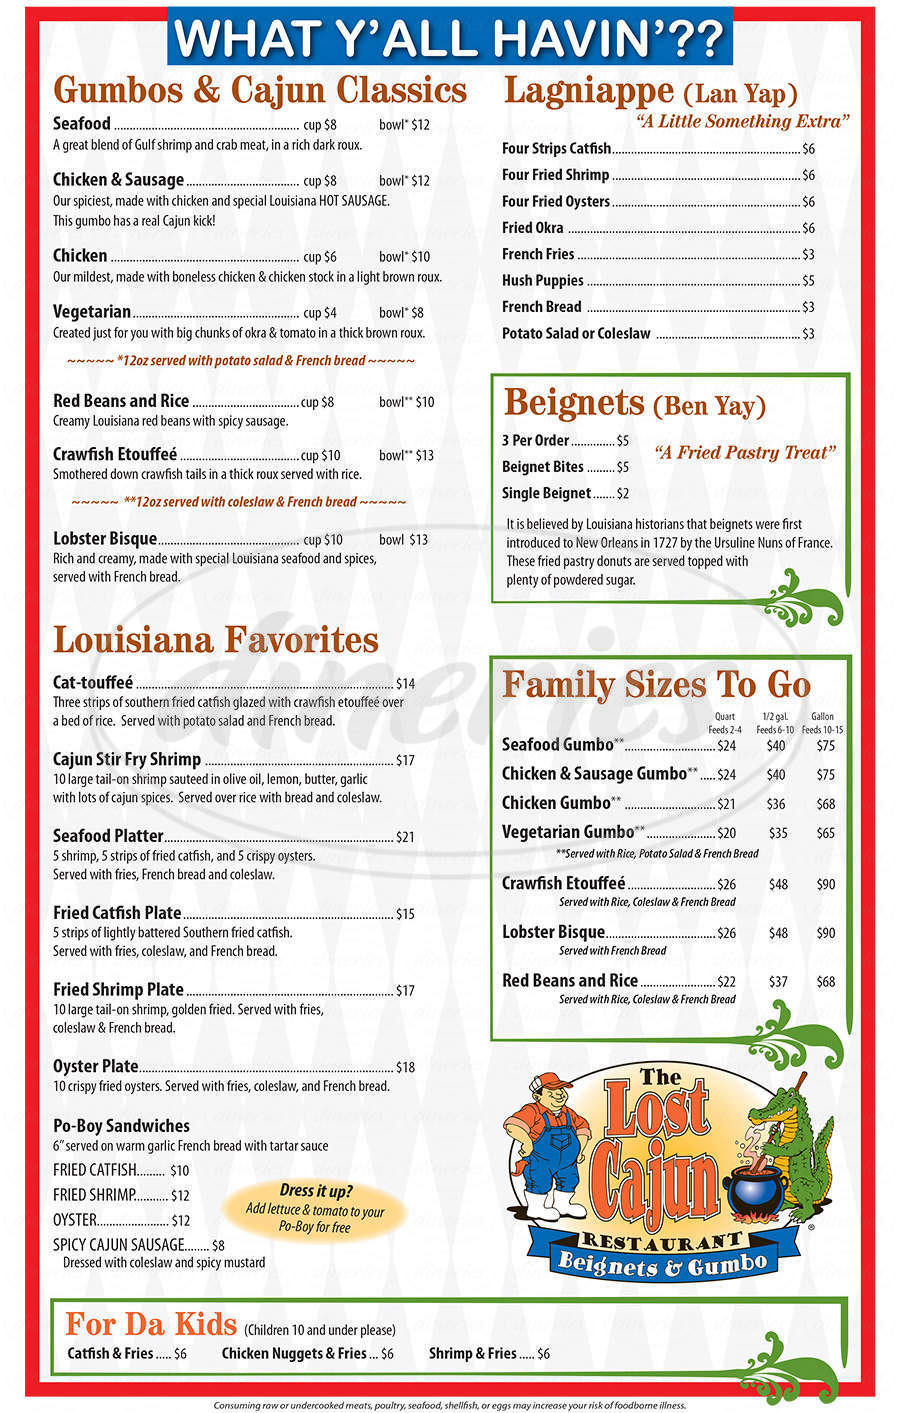 menu for The Lost Cajun